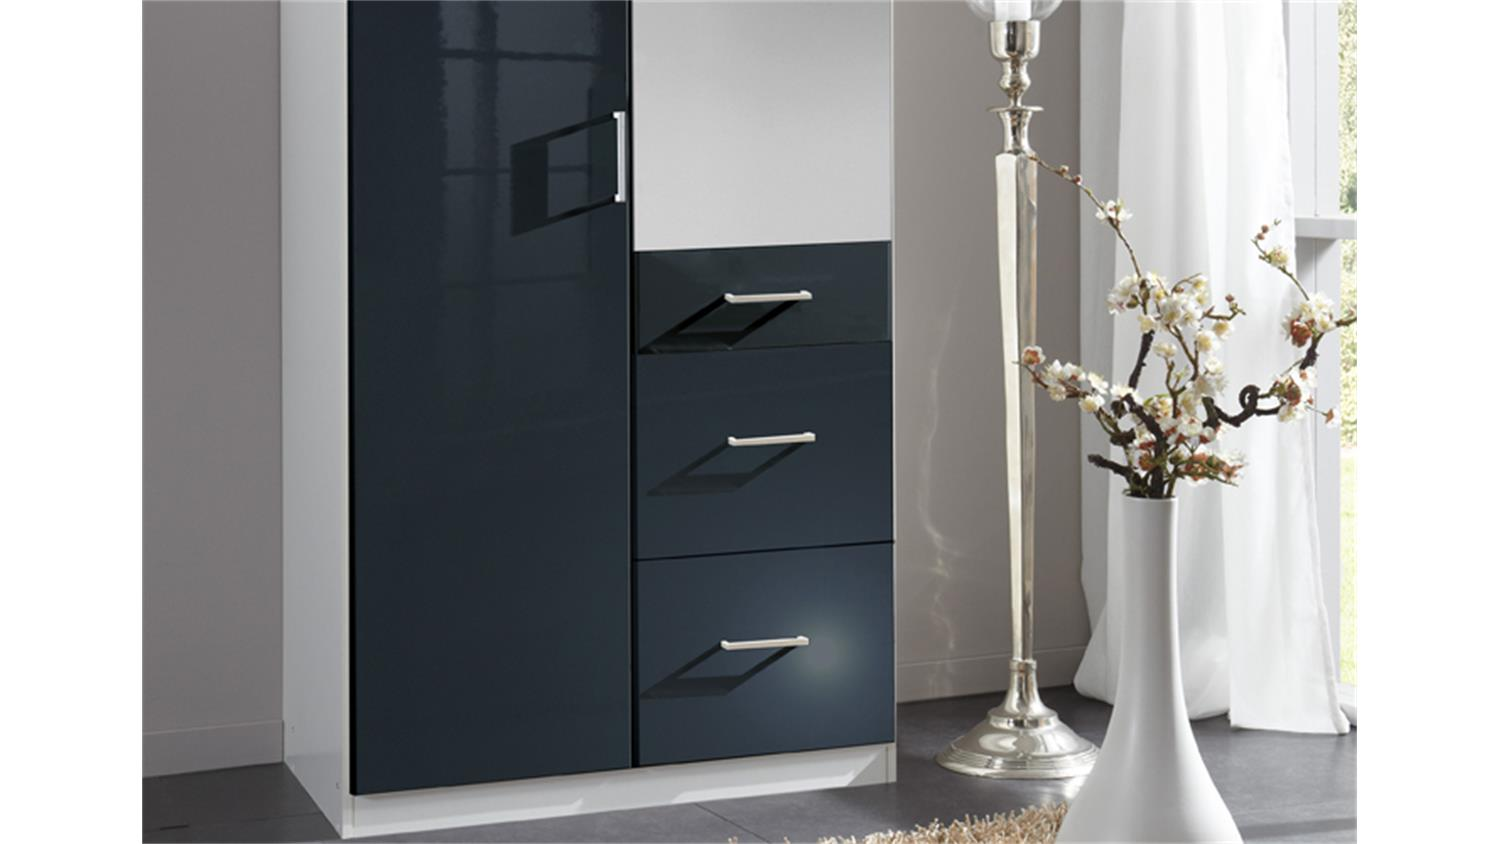 kleiderschrank clack 2 t rig hochglanz schwarz spiegel. Black Bedroom Furniture Sets. Home Design Ideas